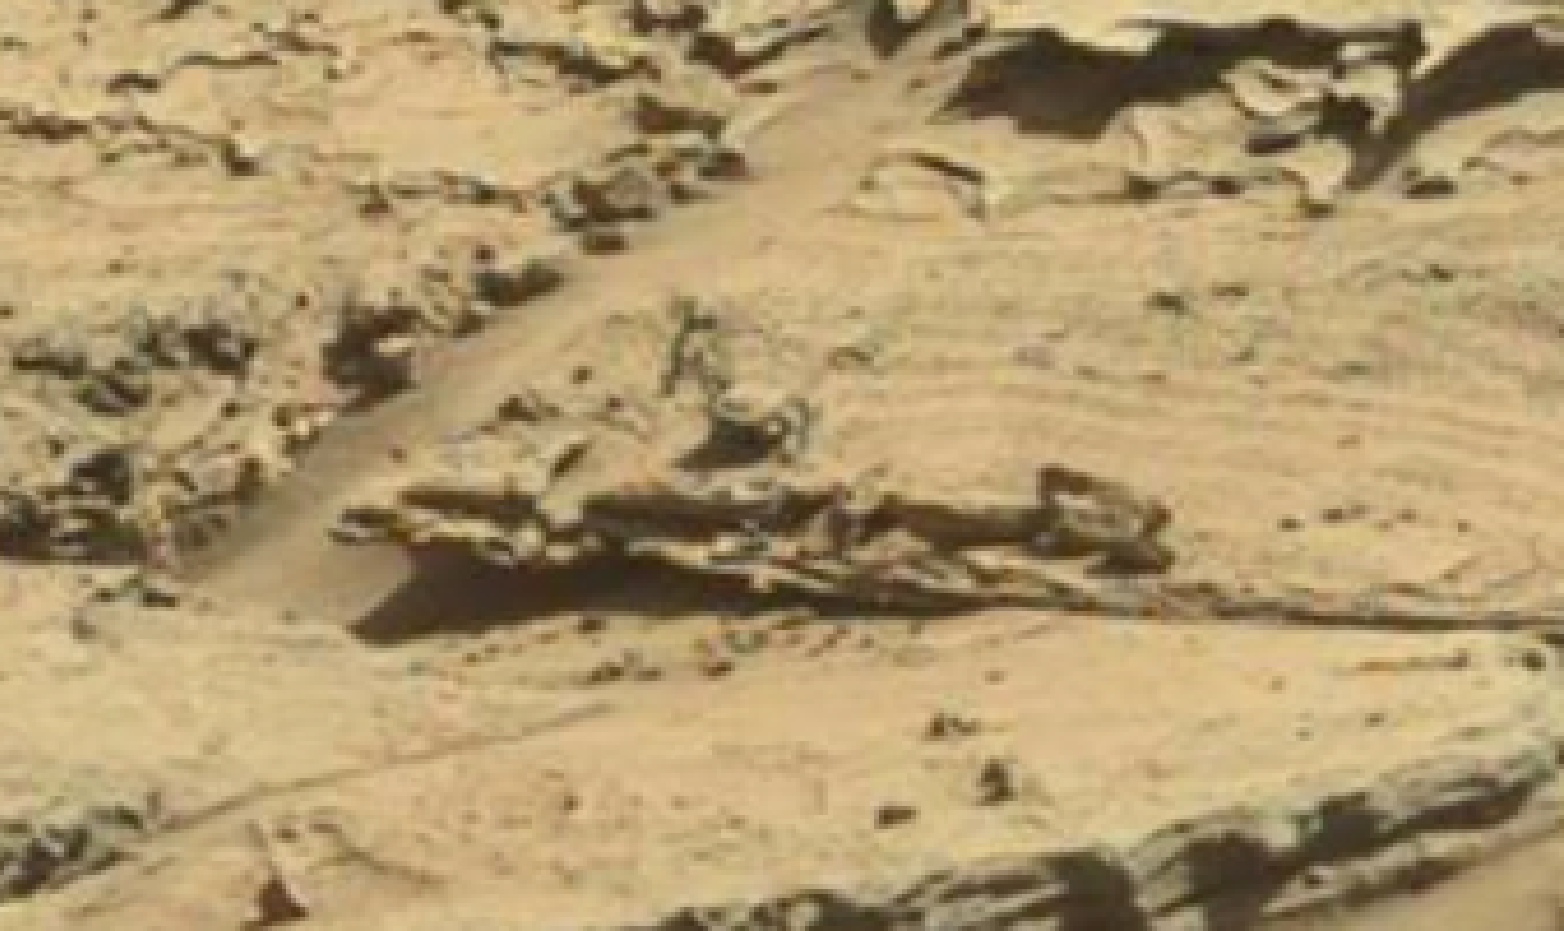 mars sol 1298 anomaly-artifacts 8 was life on mars